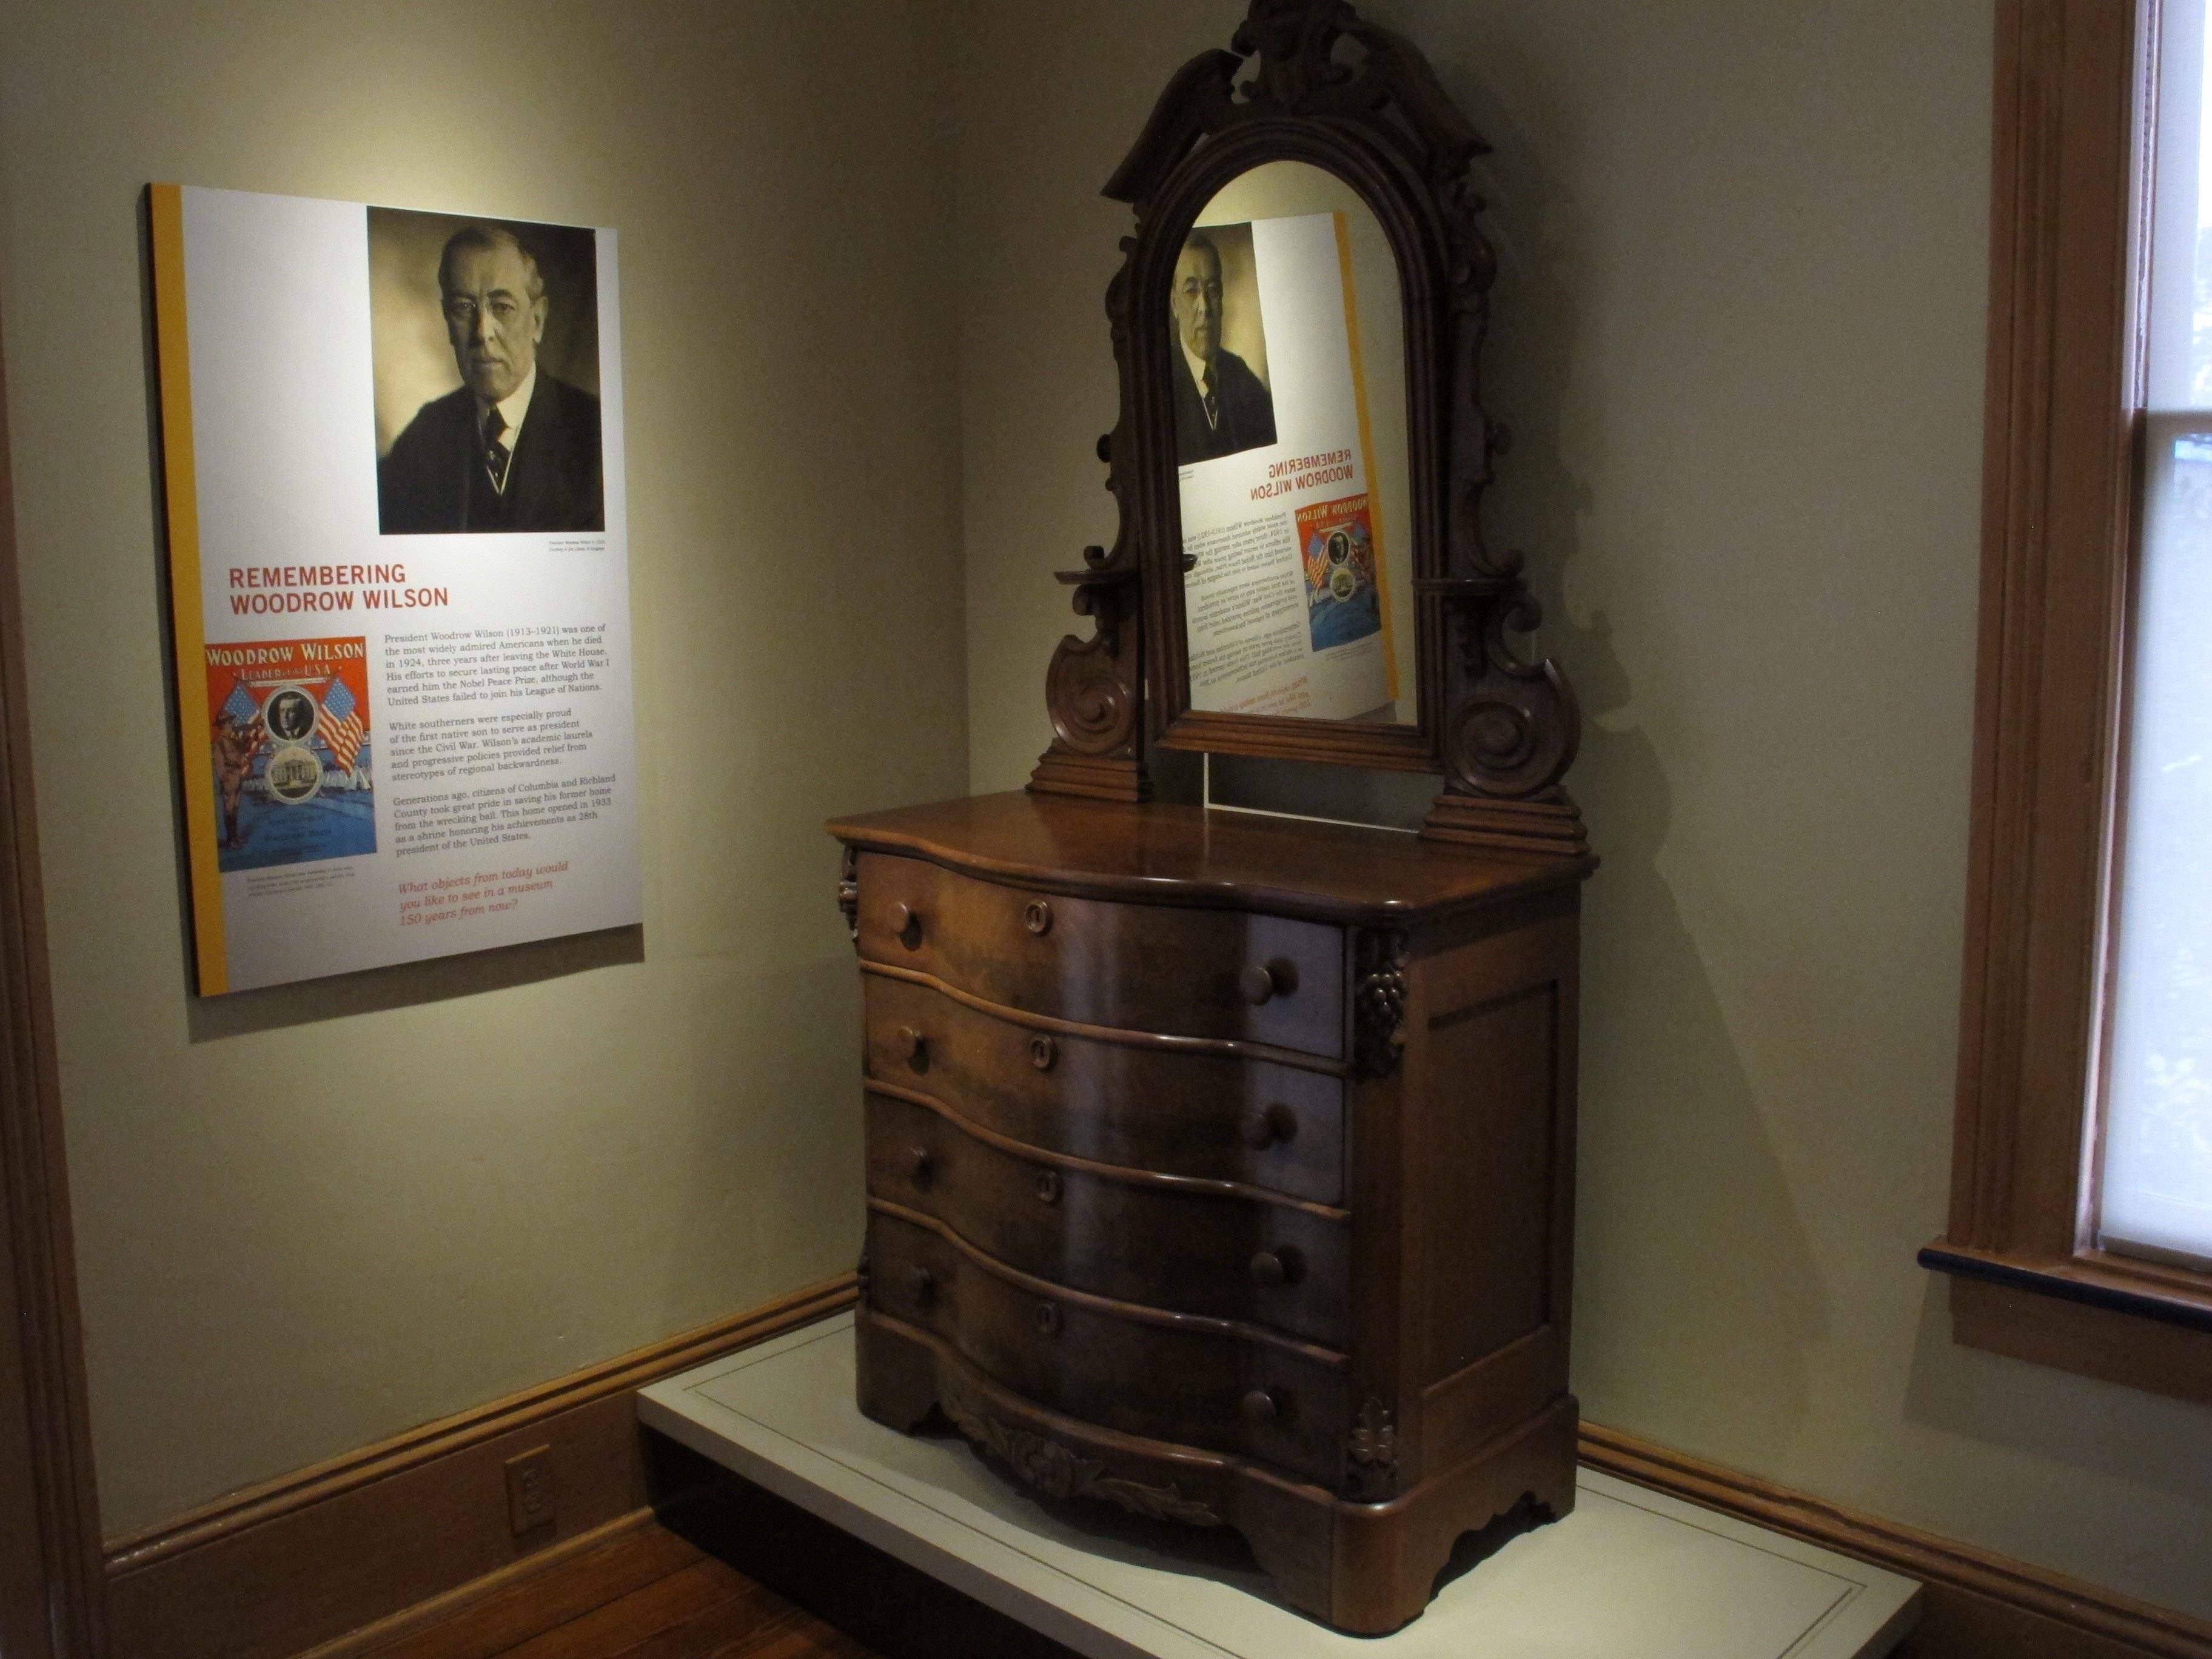 A dresser from the home where former President Woodrow Wilson was born is on display in his newly renovated boyhood house in Columbia, S.C.